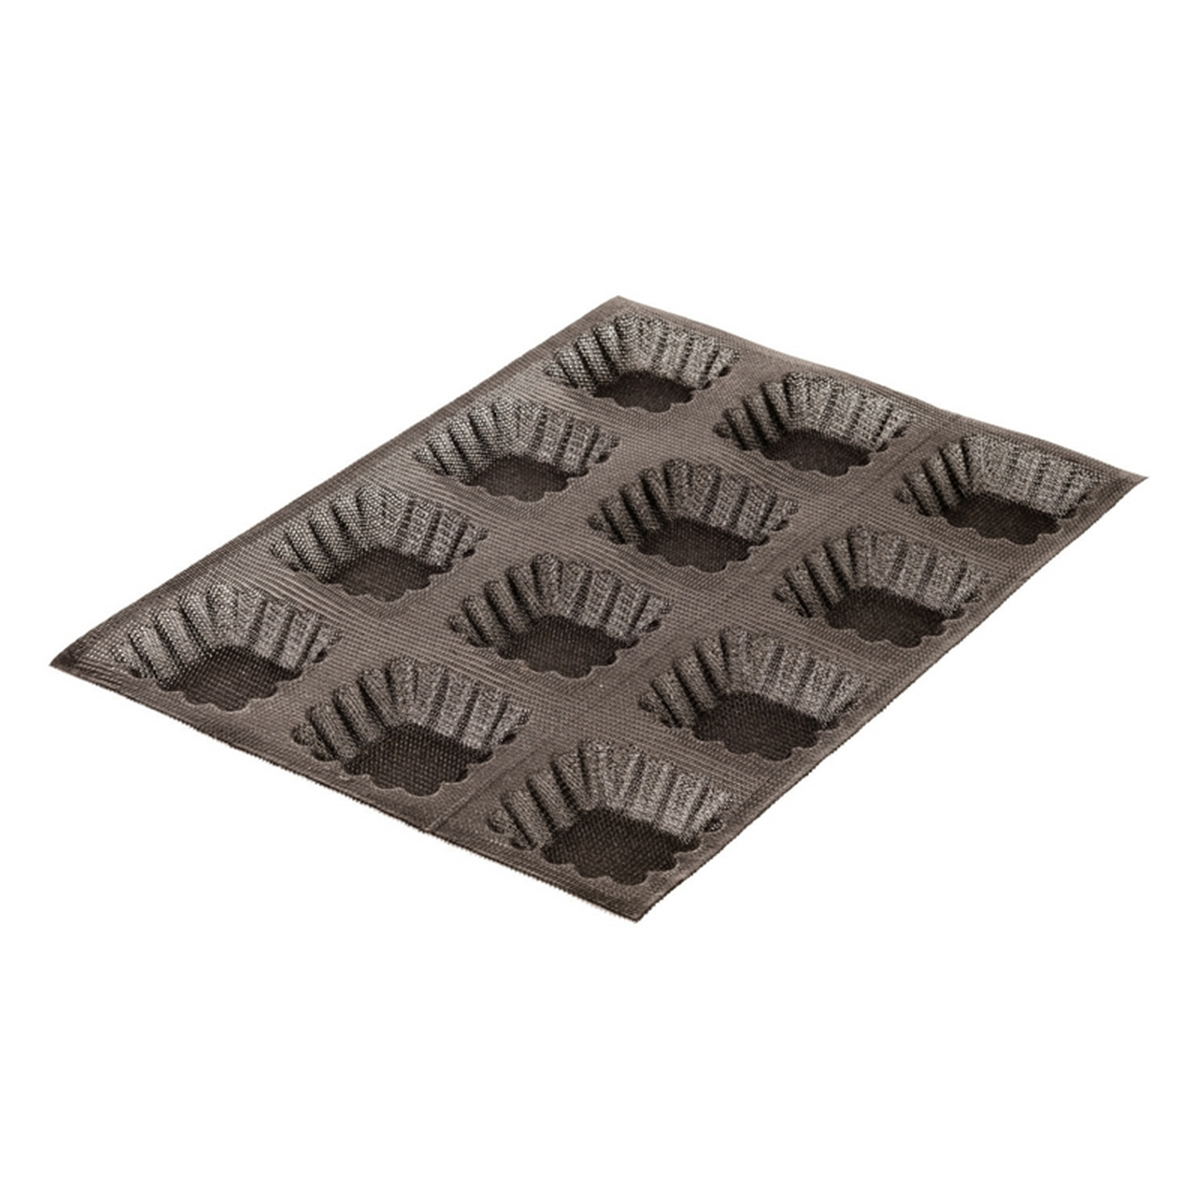 Bon Cook Silform 174 Fluted Square Tray 12